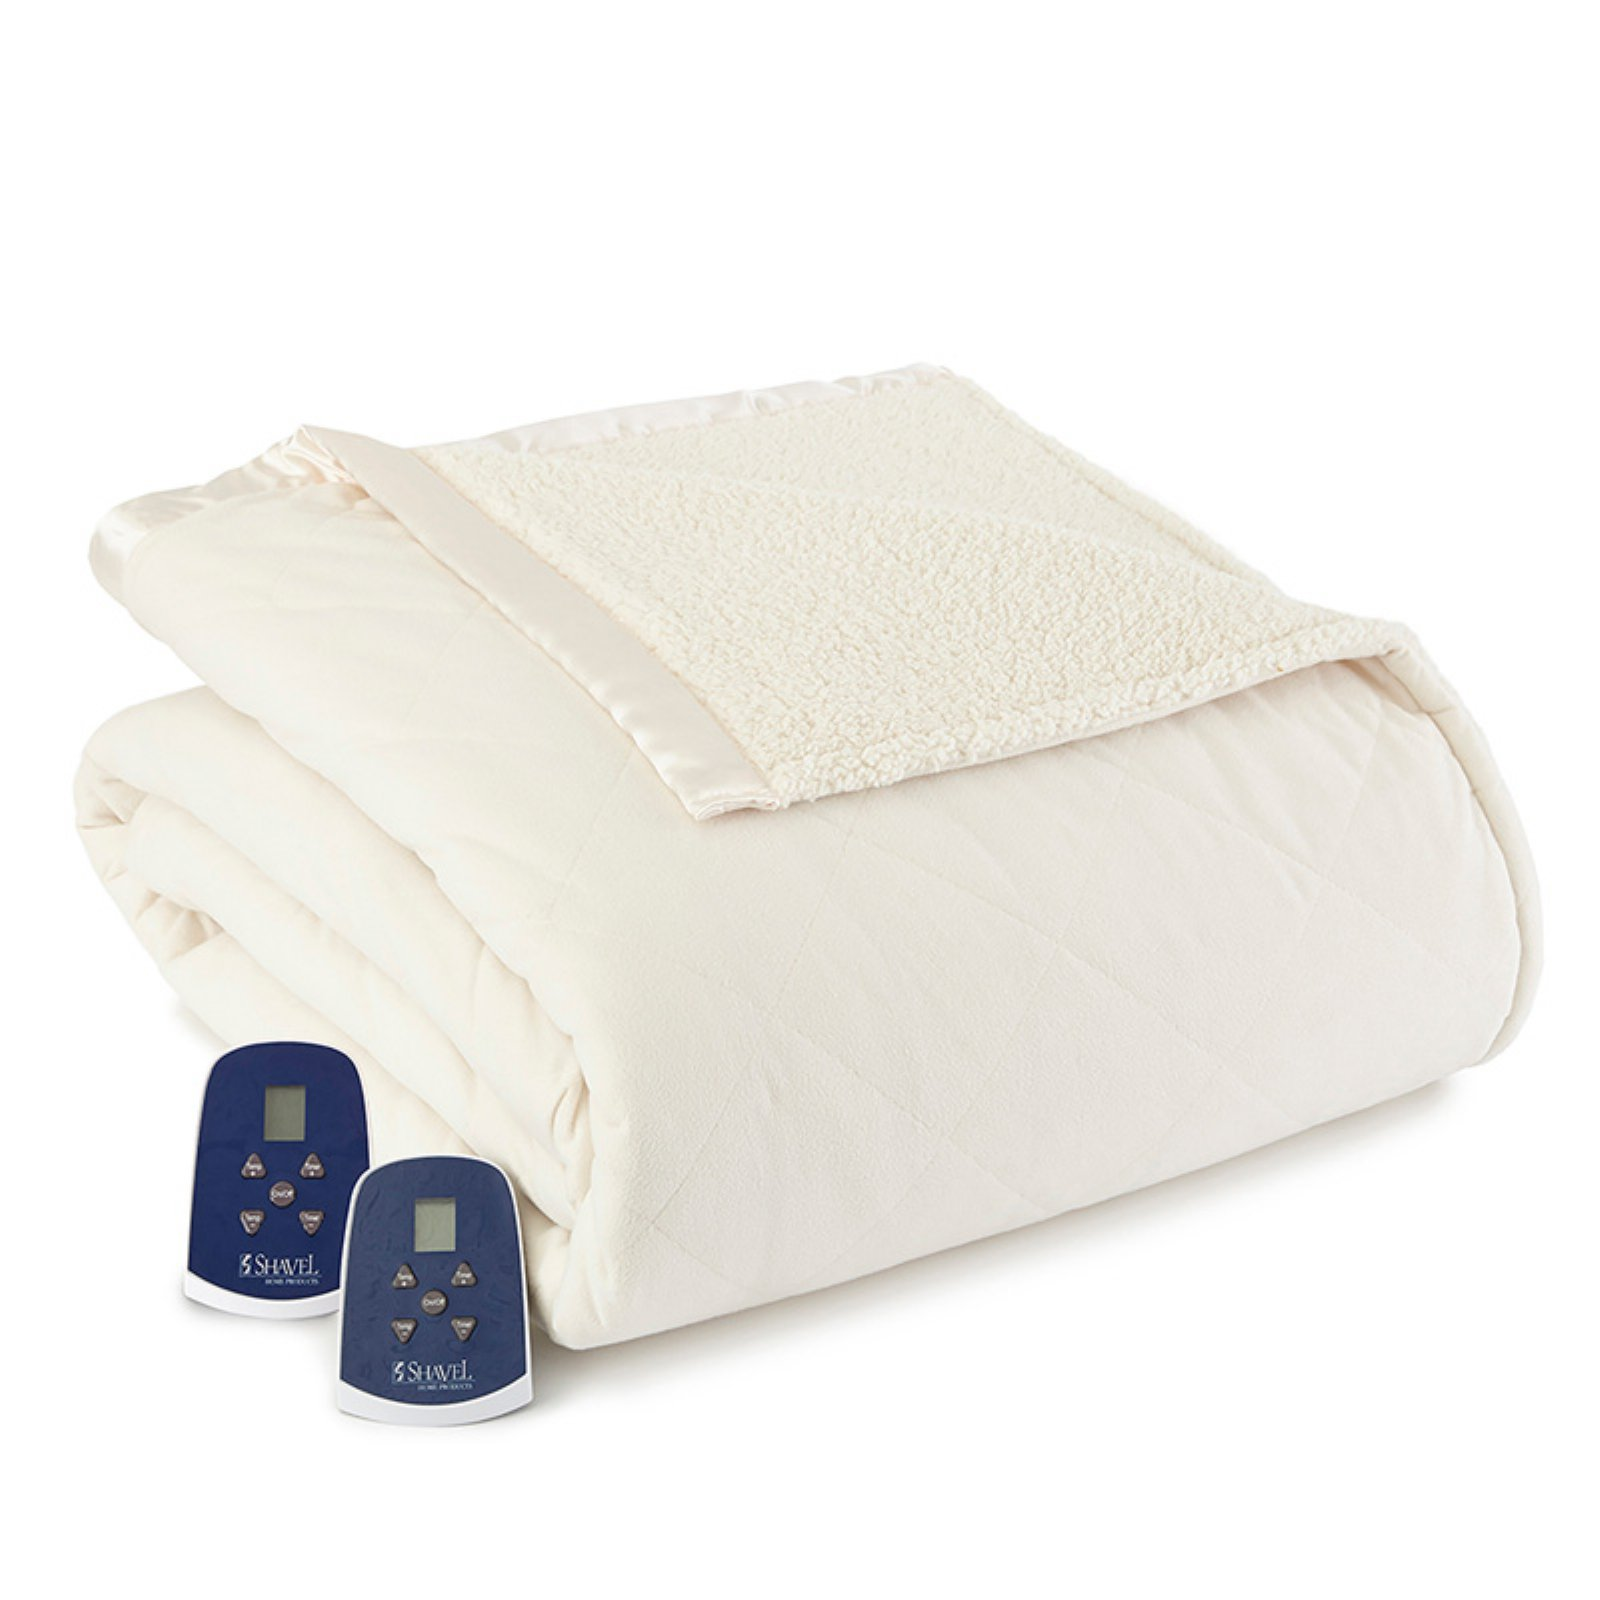 carmen comforter eases spa soft bottle heated pain water hot rechargeable comfy